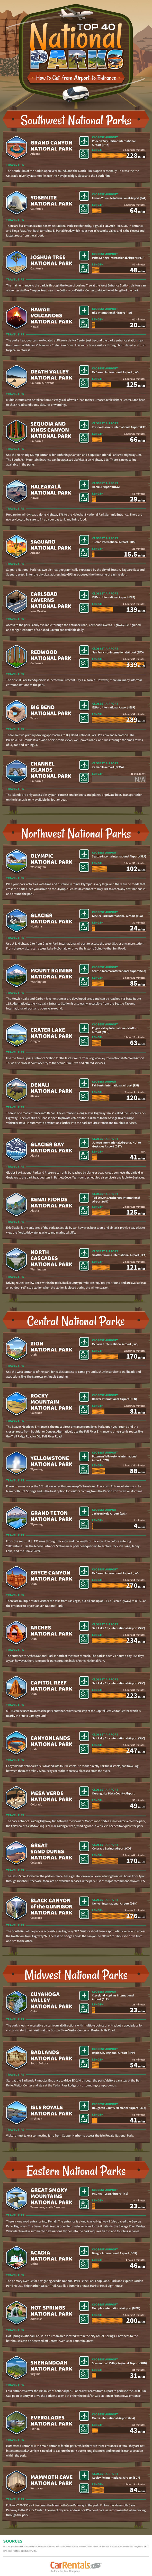 Planning the Best Route for Your National Park Holiday: From Airport to Park Entrance - Infographic